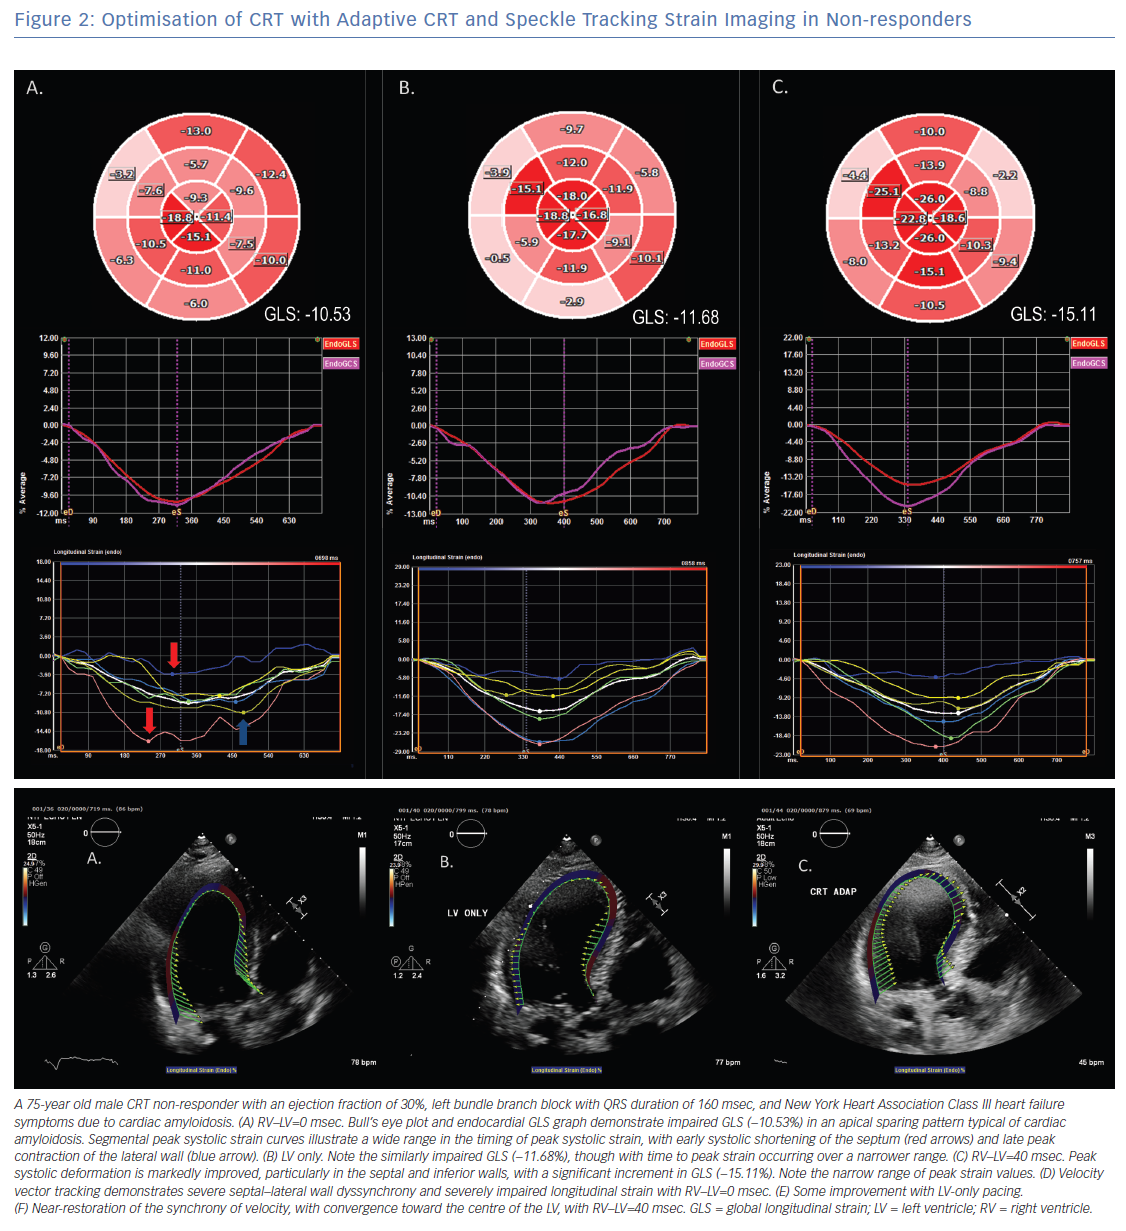 Optimisation of CRT with Adaptive CRT and Speckle Tracking Strain Imaging in Non-responders